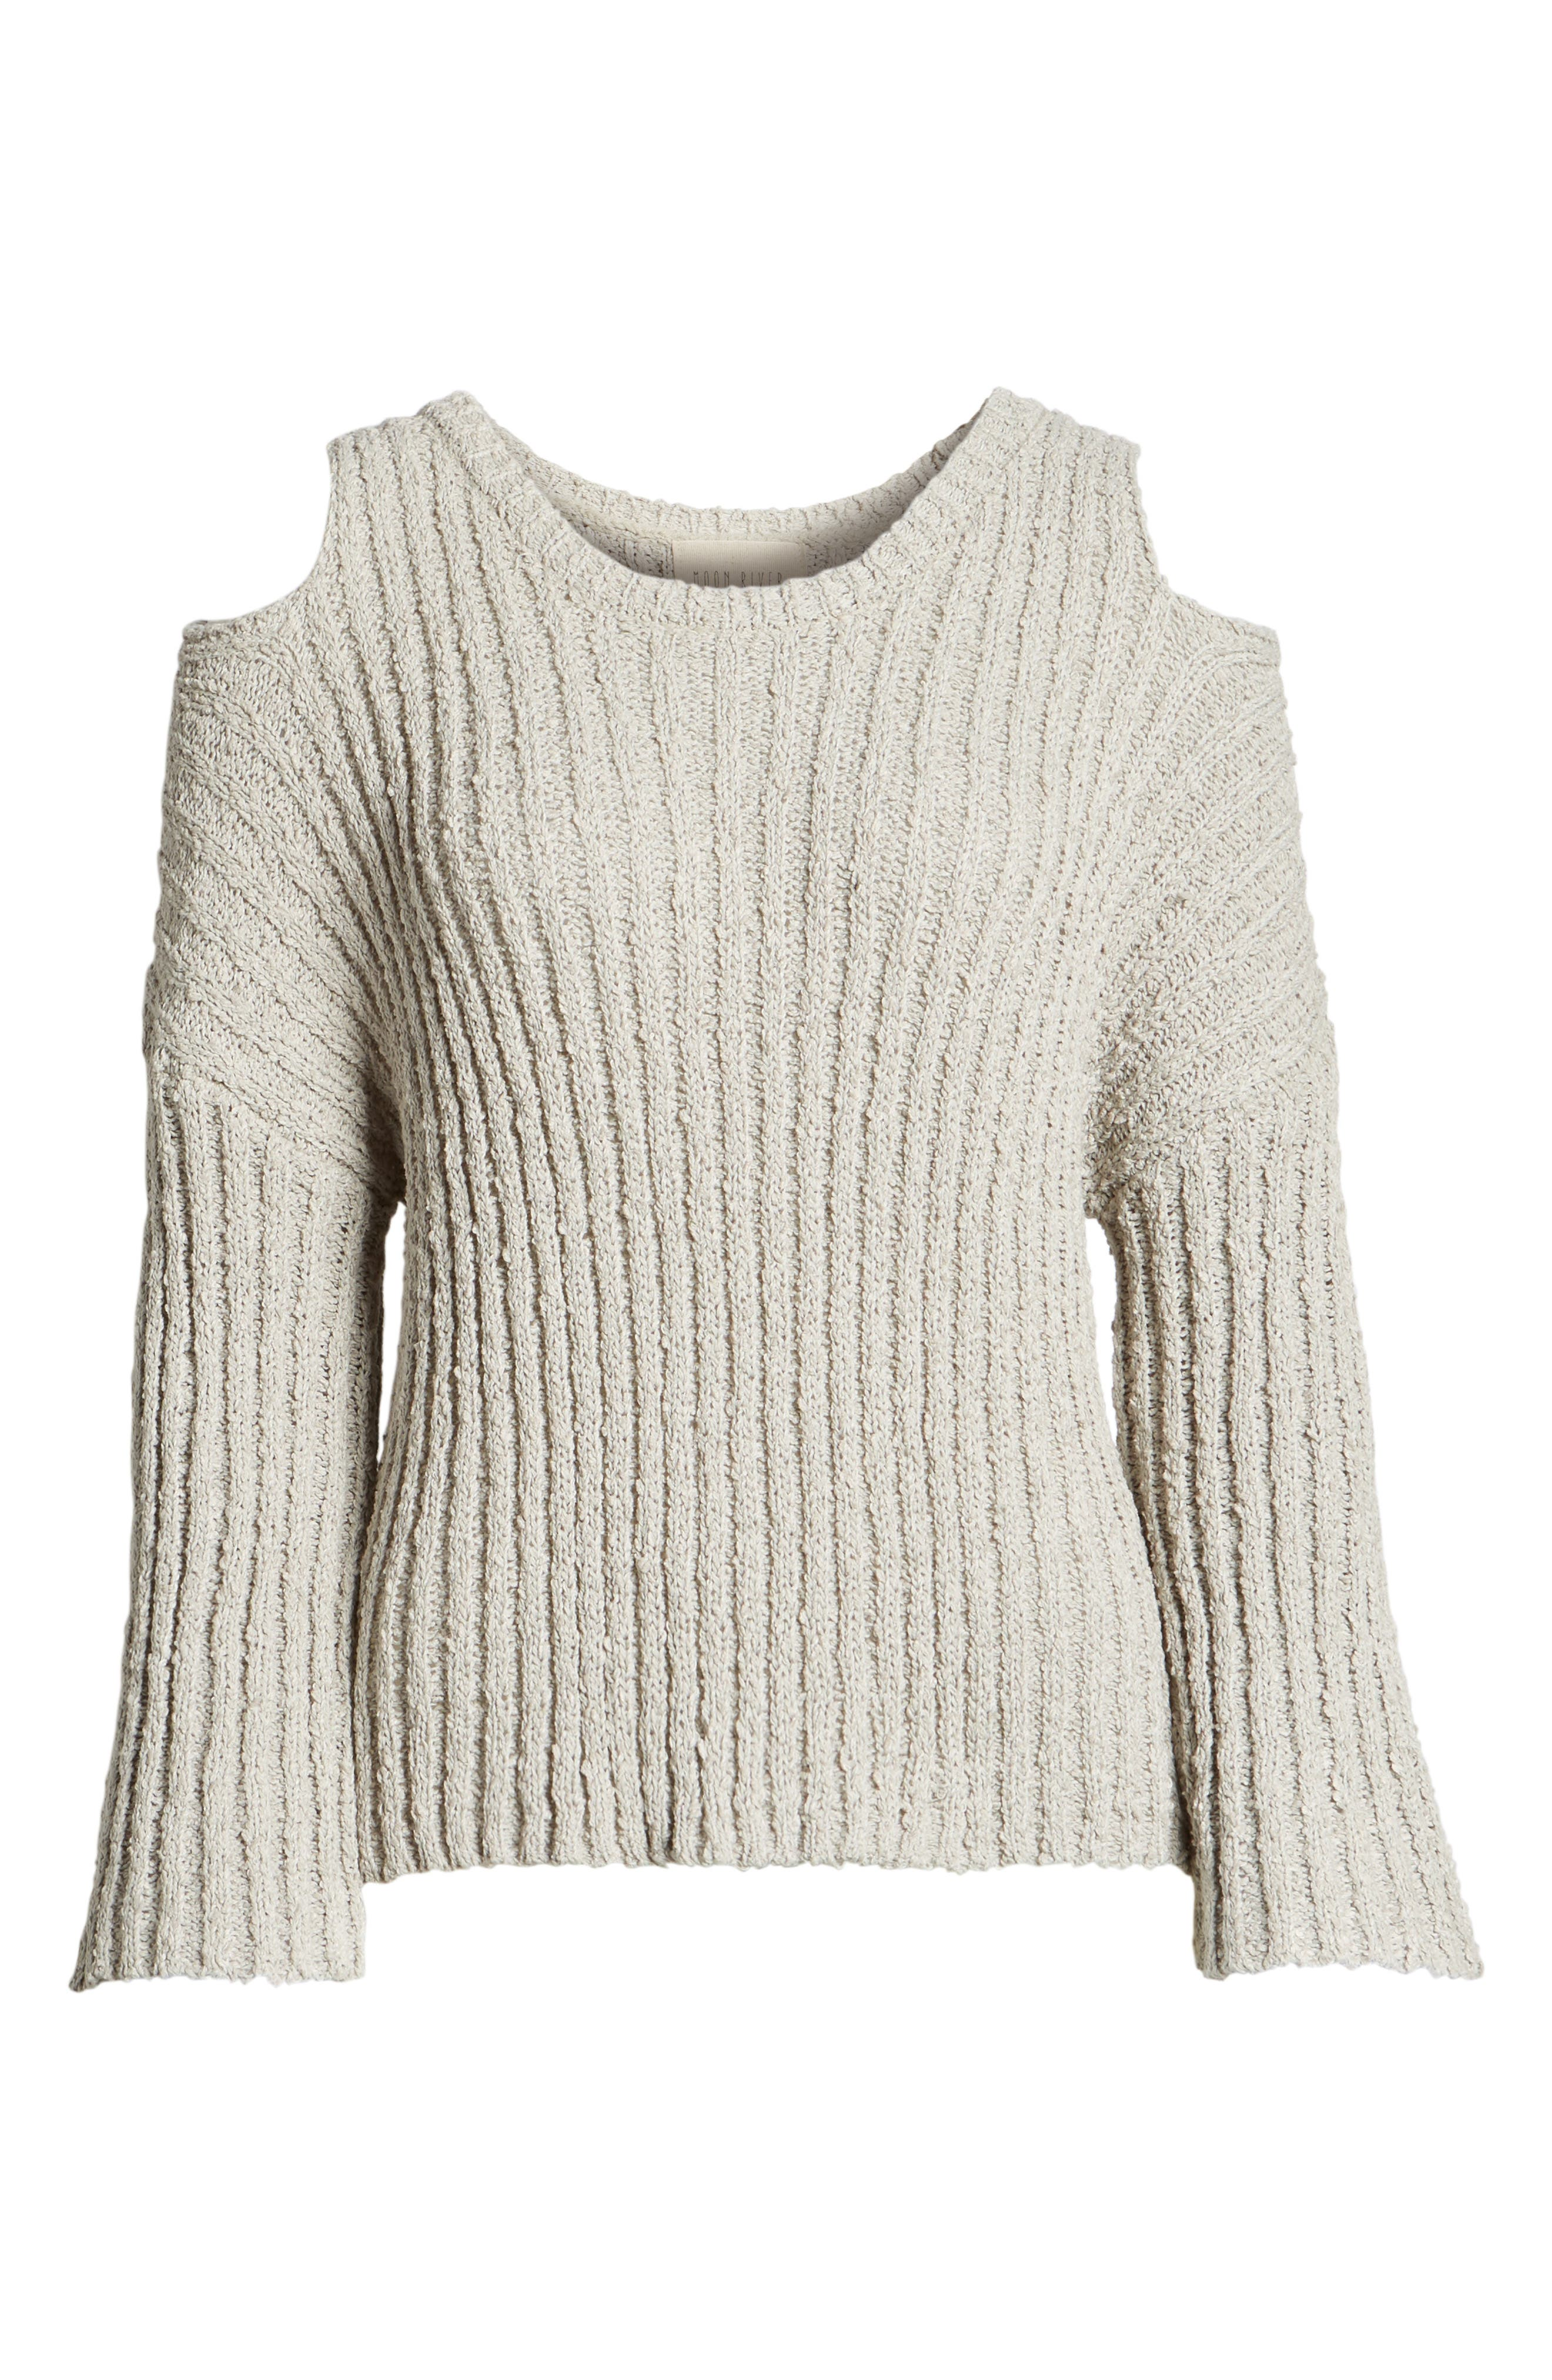 Fuzzy Knit Cold Shoulder Sweater,                             Alternate thumbnail 6, color,                             020